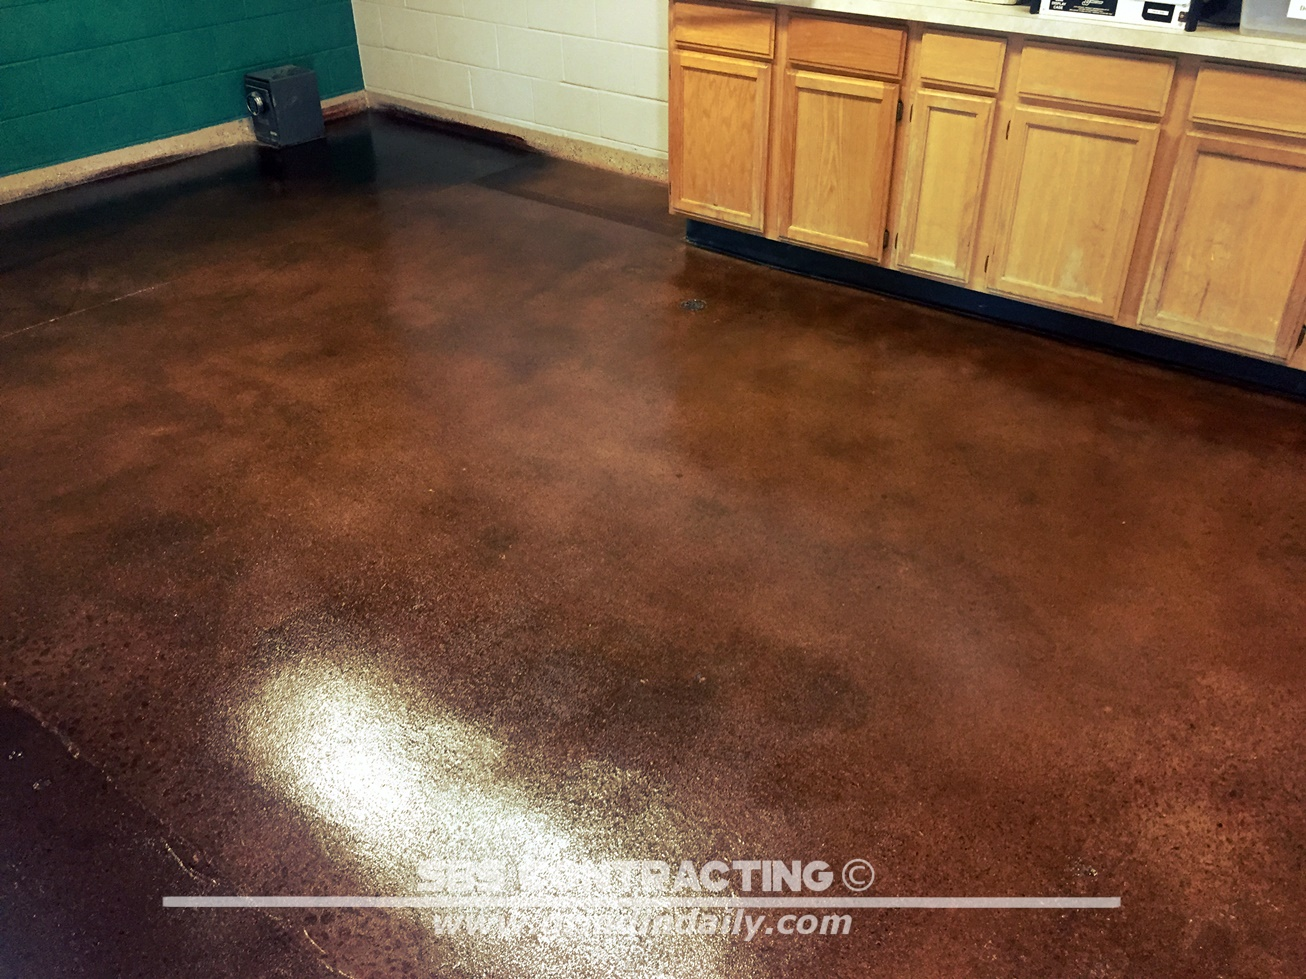 SBS-Contrating-Concrete-Stain-Project-09-01